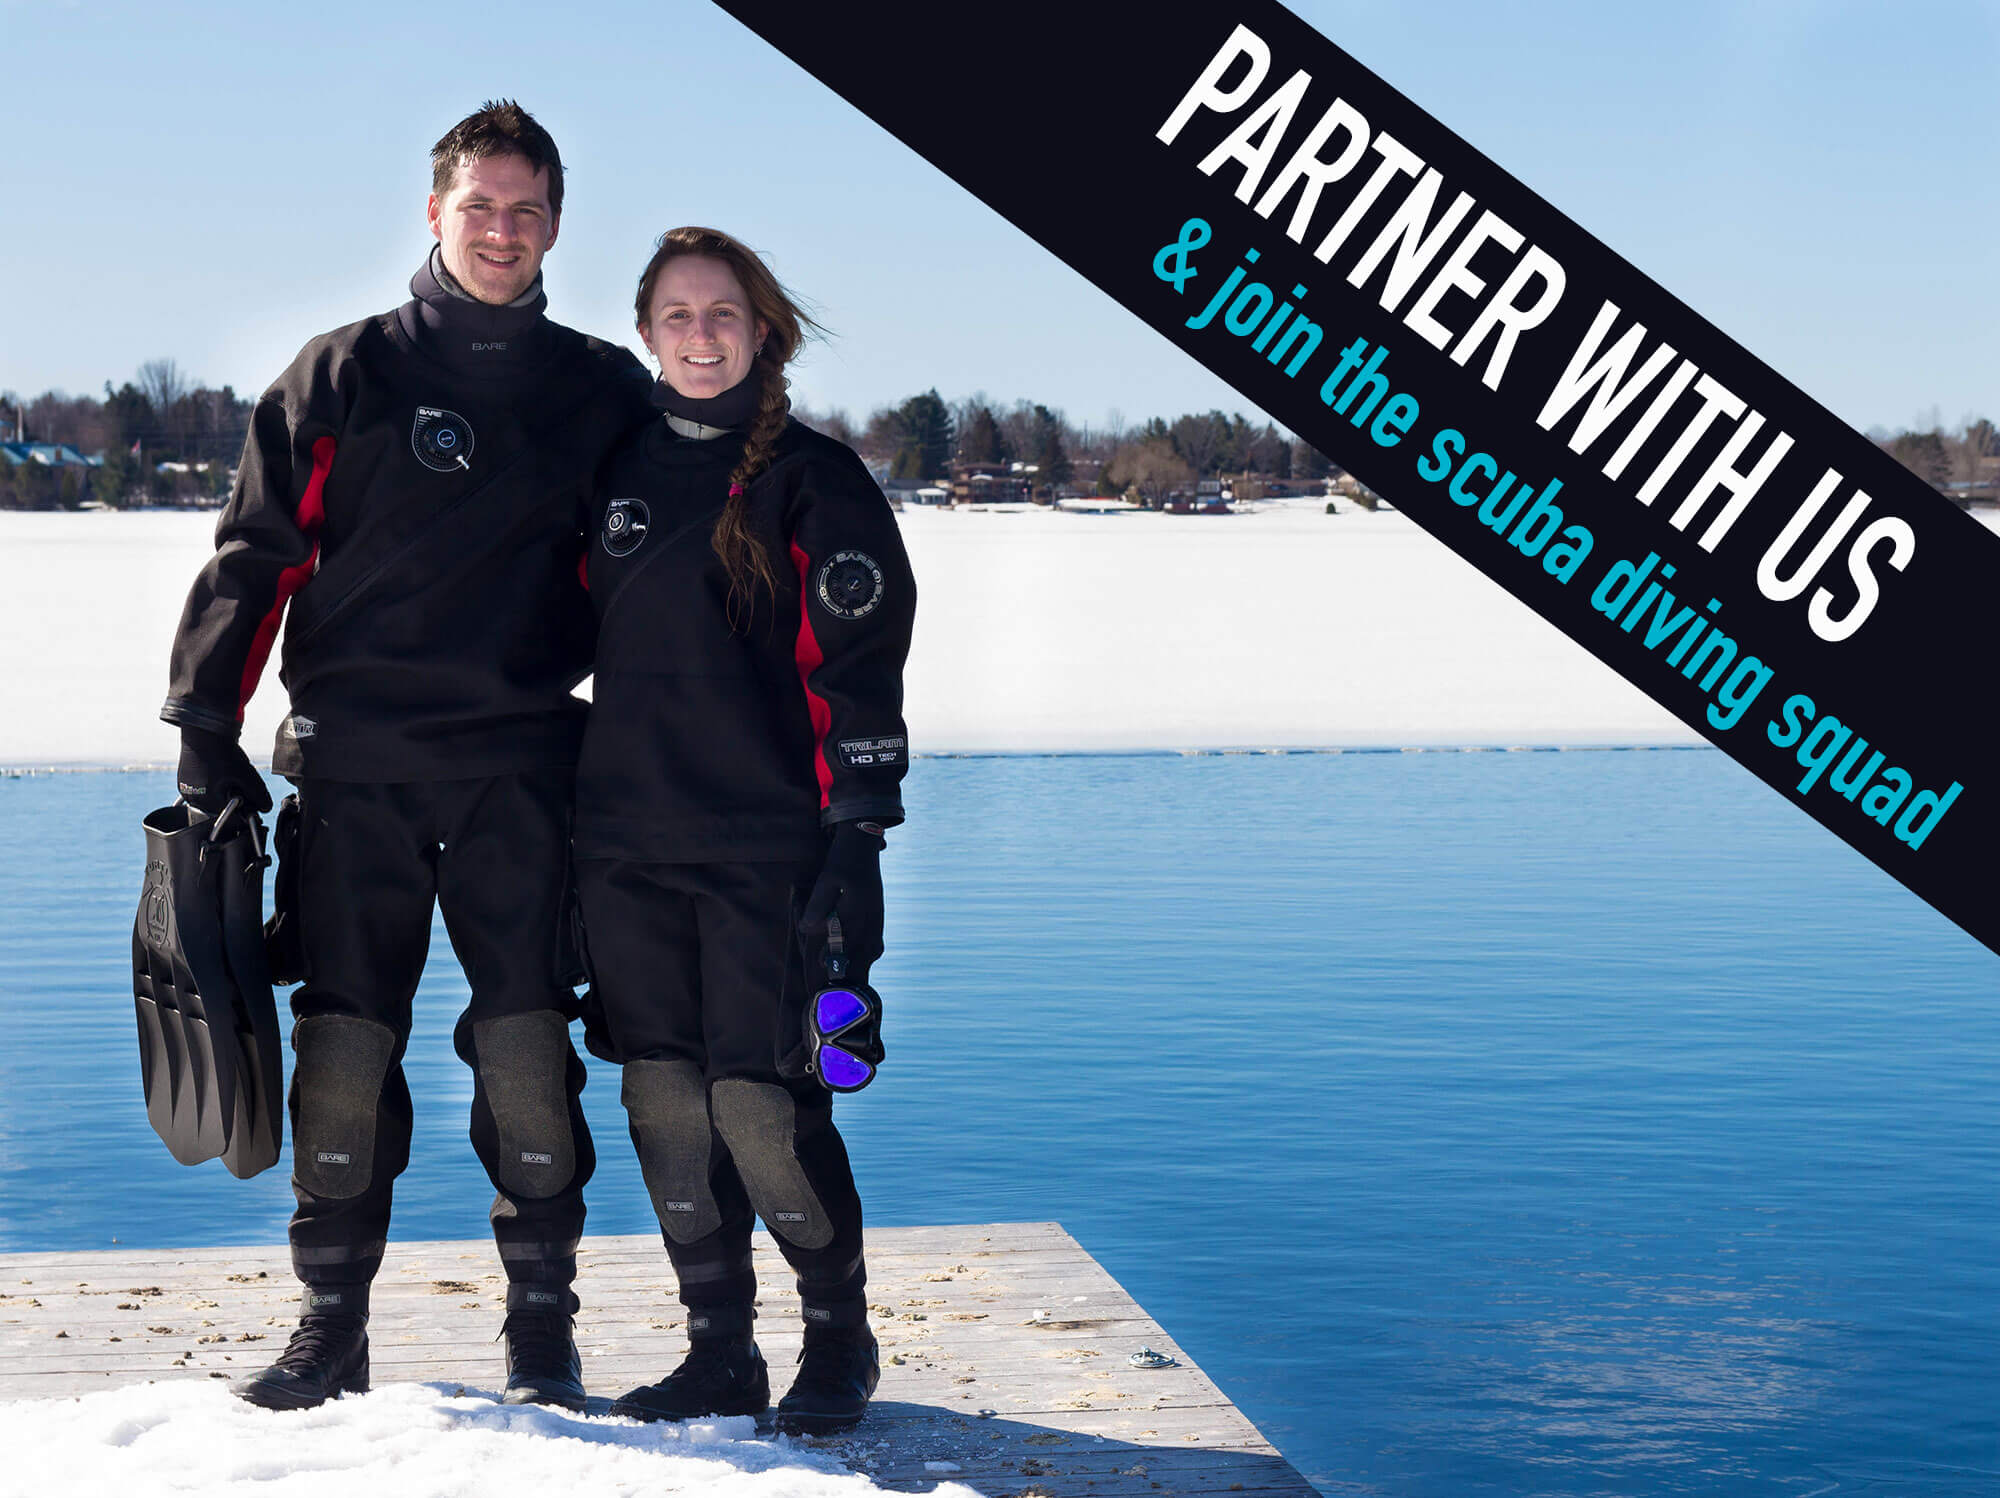 Partner With Us And Join The Scuba Diving Squad